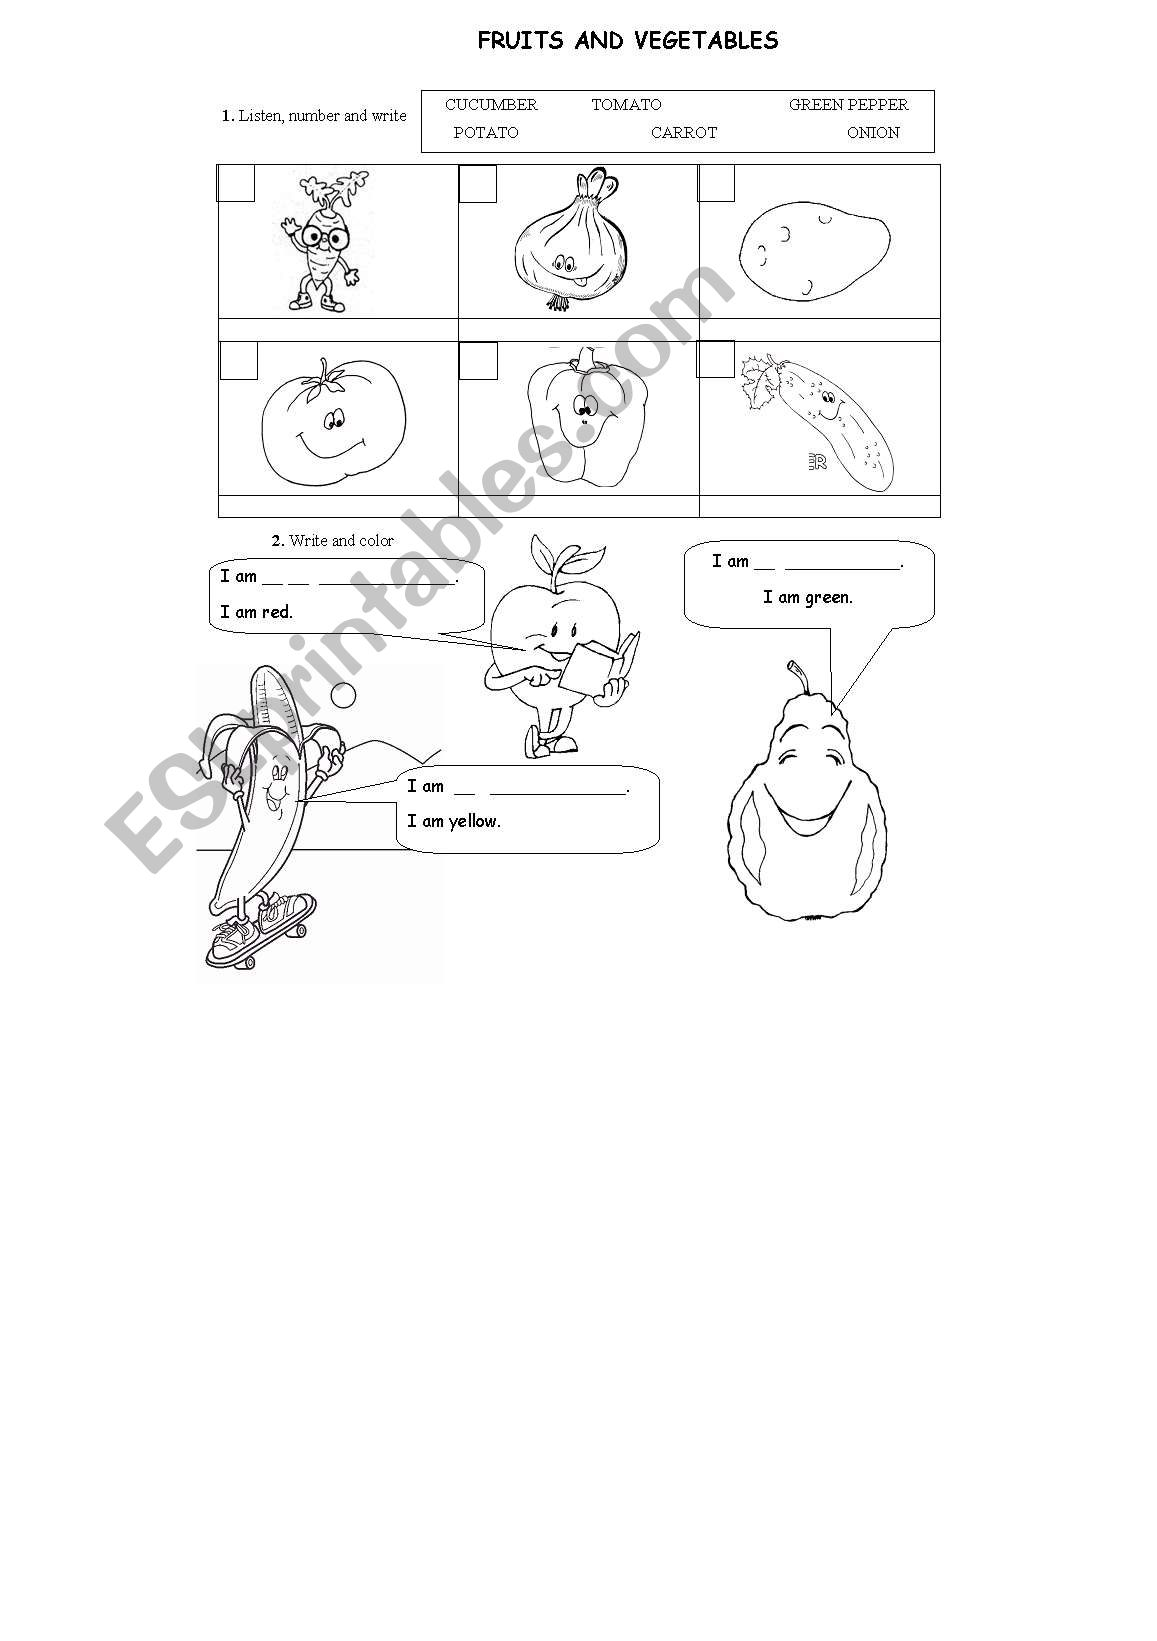 FRUITS AND VEGETABLES worksheet